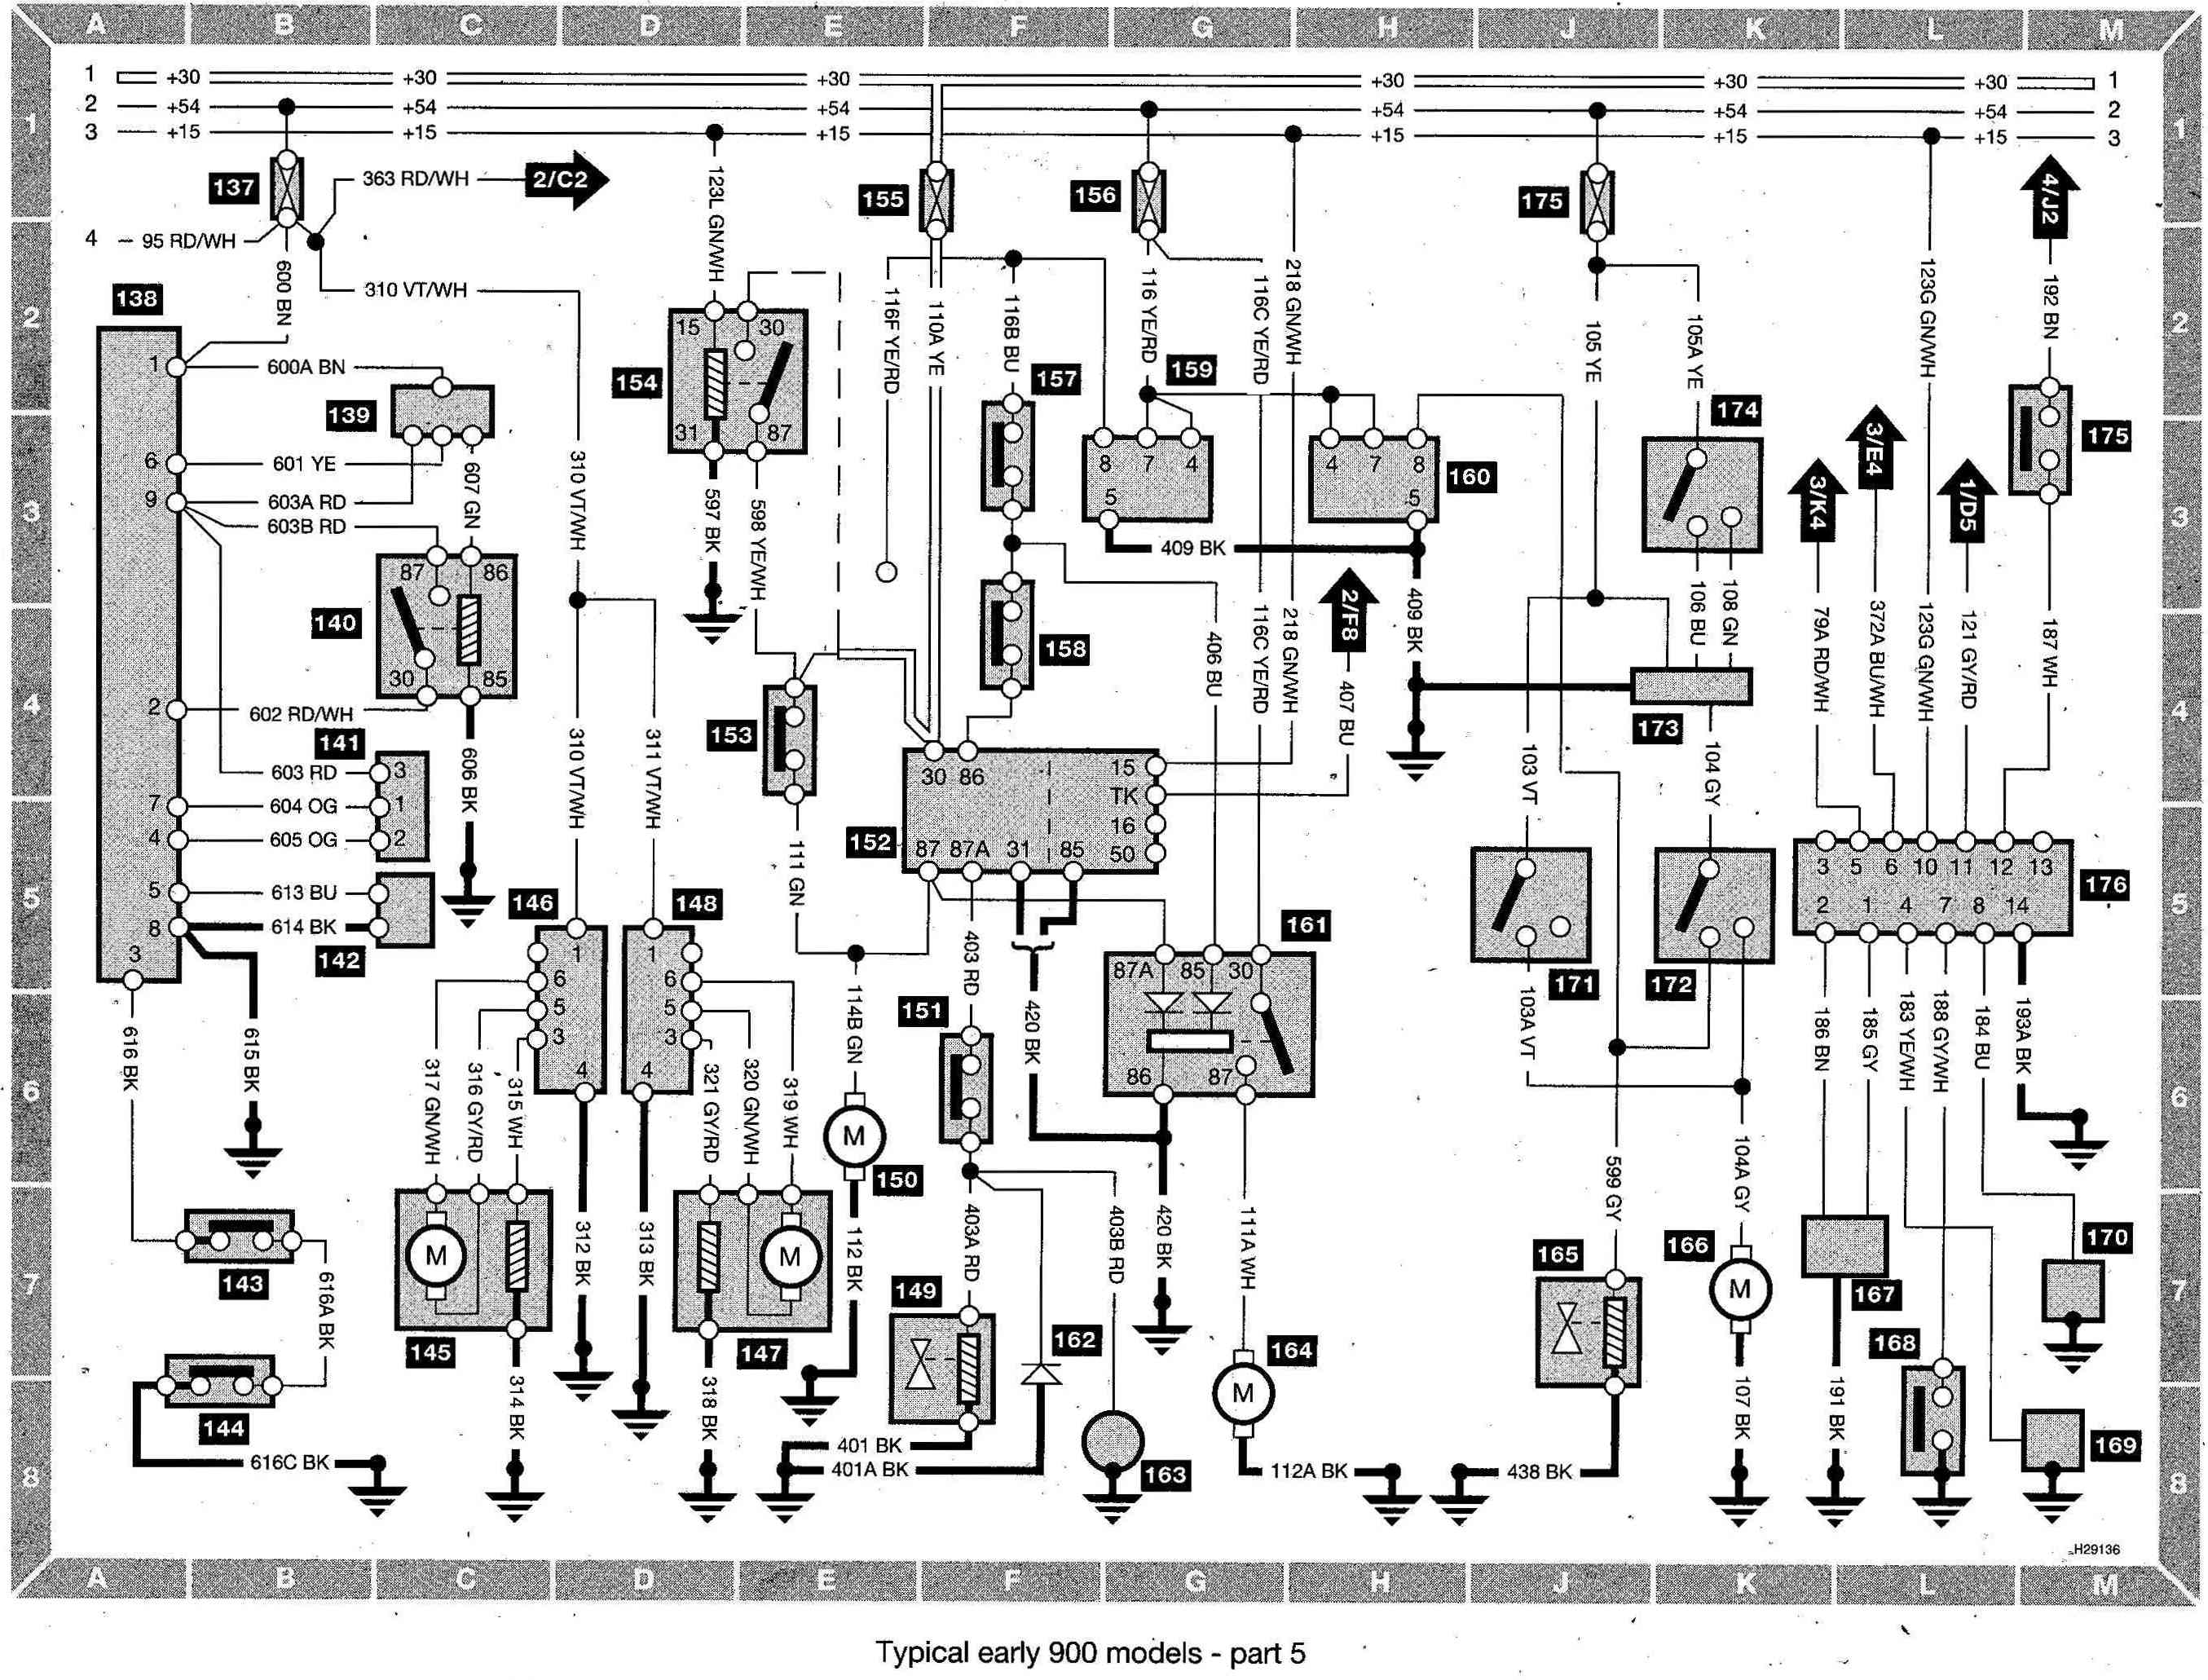 Saab 900 Wiring diagram (early models) part 5 saab 9 5 wiring diagram telematics wiring schematic \u2022 wiring saab 900 wiring diagram pdf at aneh.co